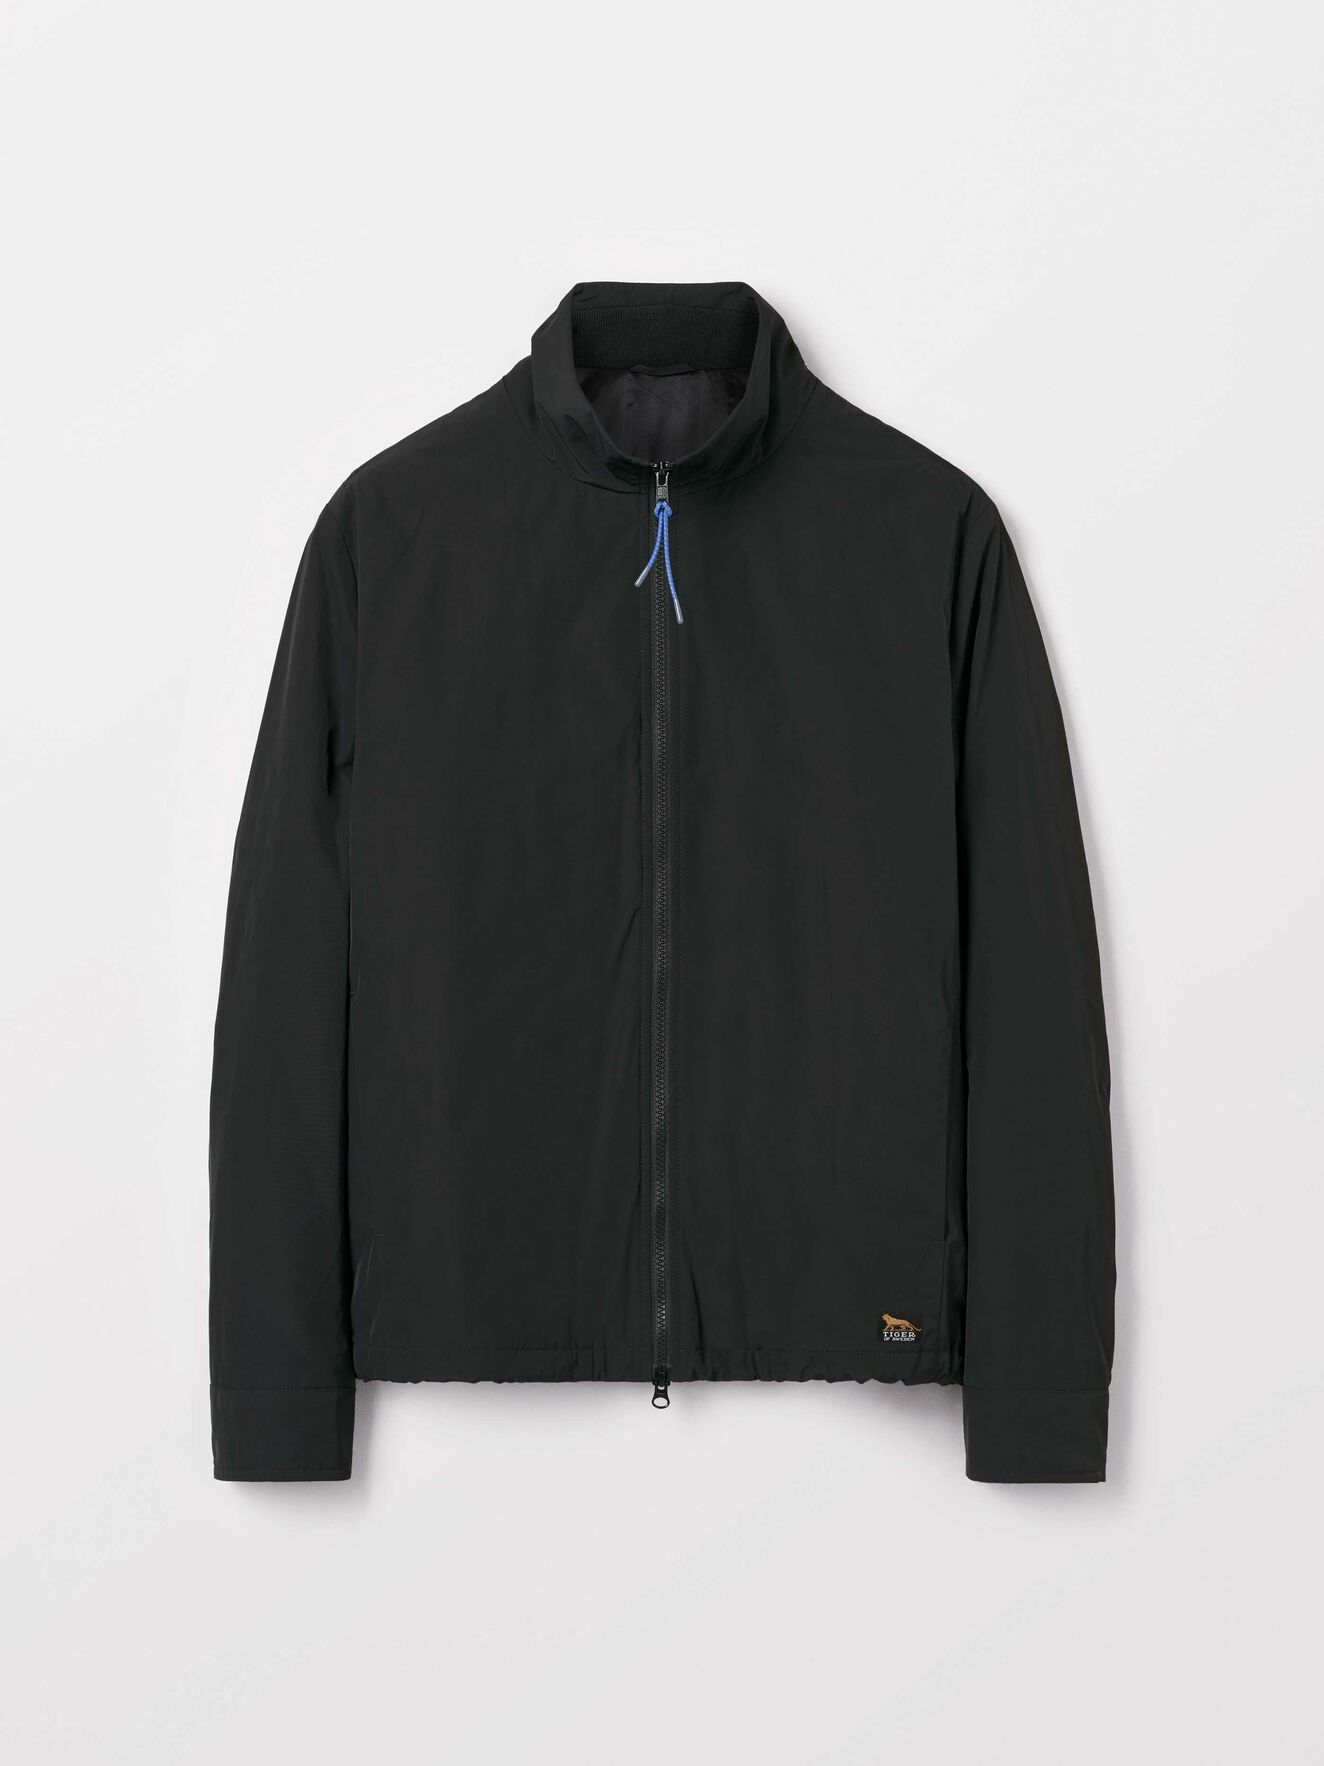 Oleeg Jacket in Black from Tiger of Sweden